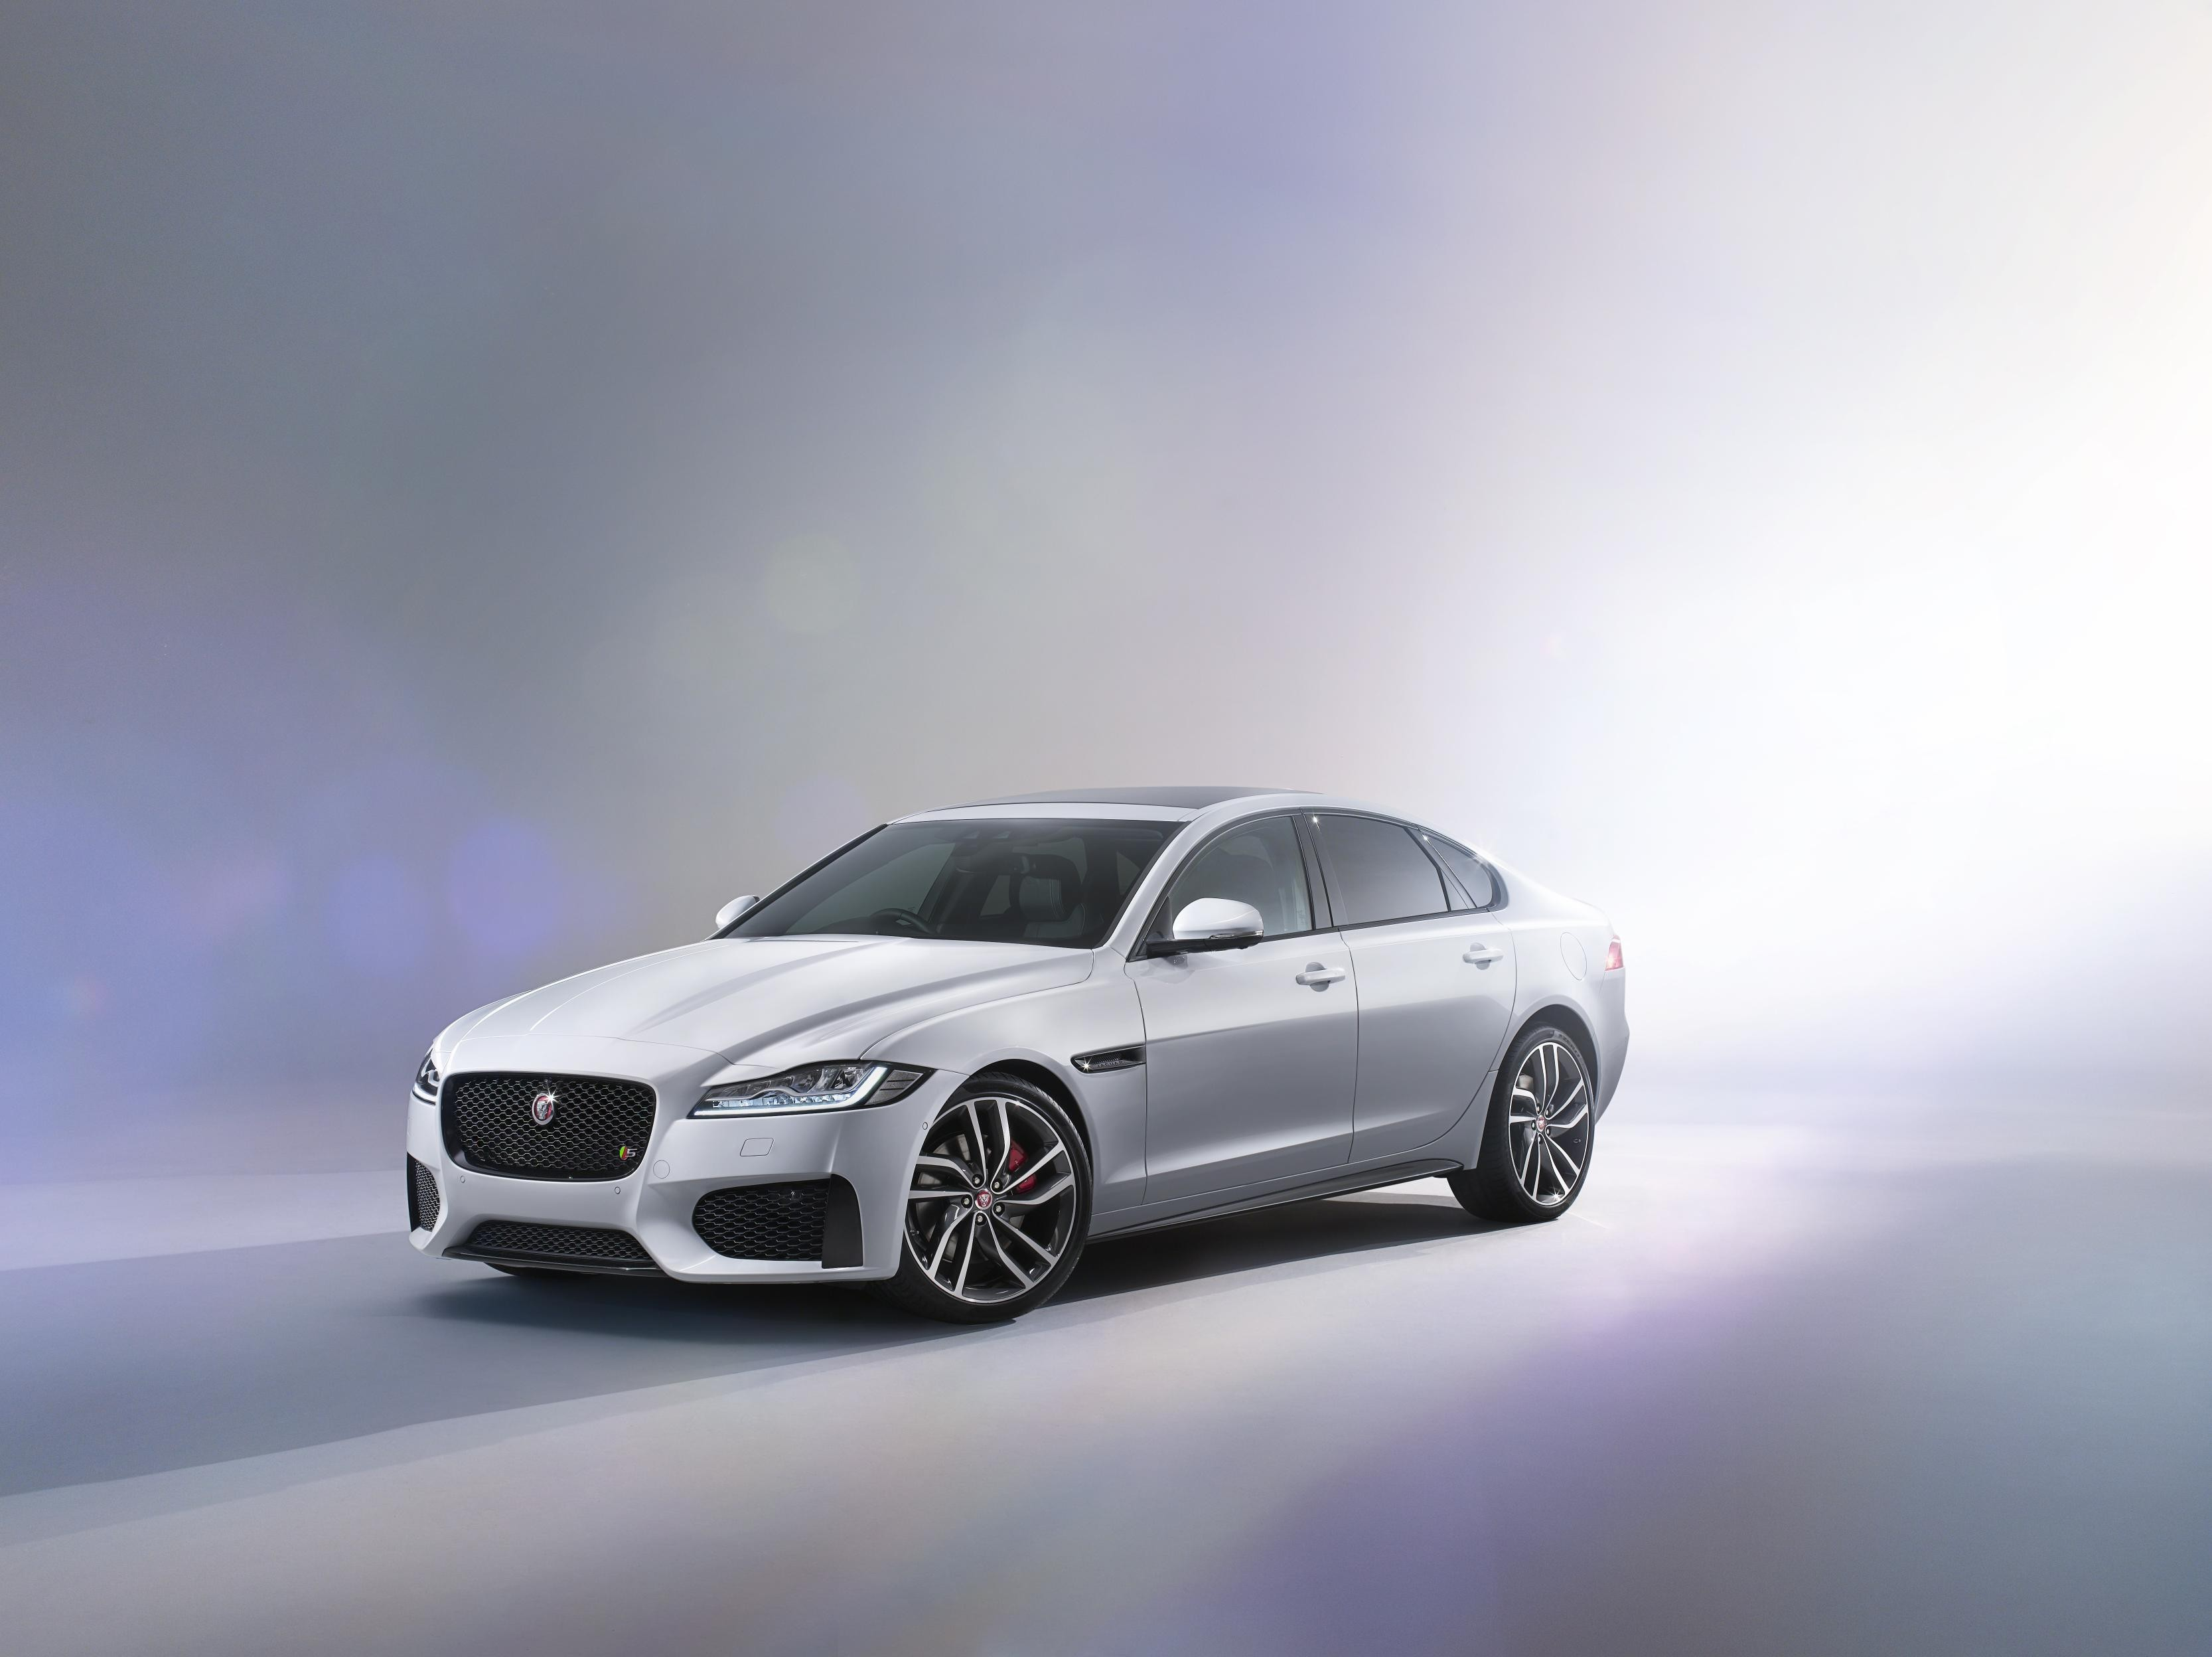 2015 jaguar xf officially unveiled video photo gallery autoevolution. Black Bedroom Furniture Sets. Home Design Ideas